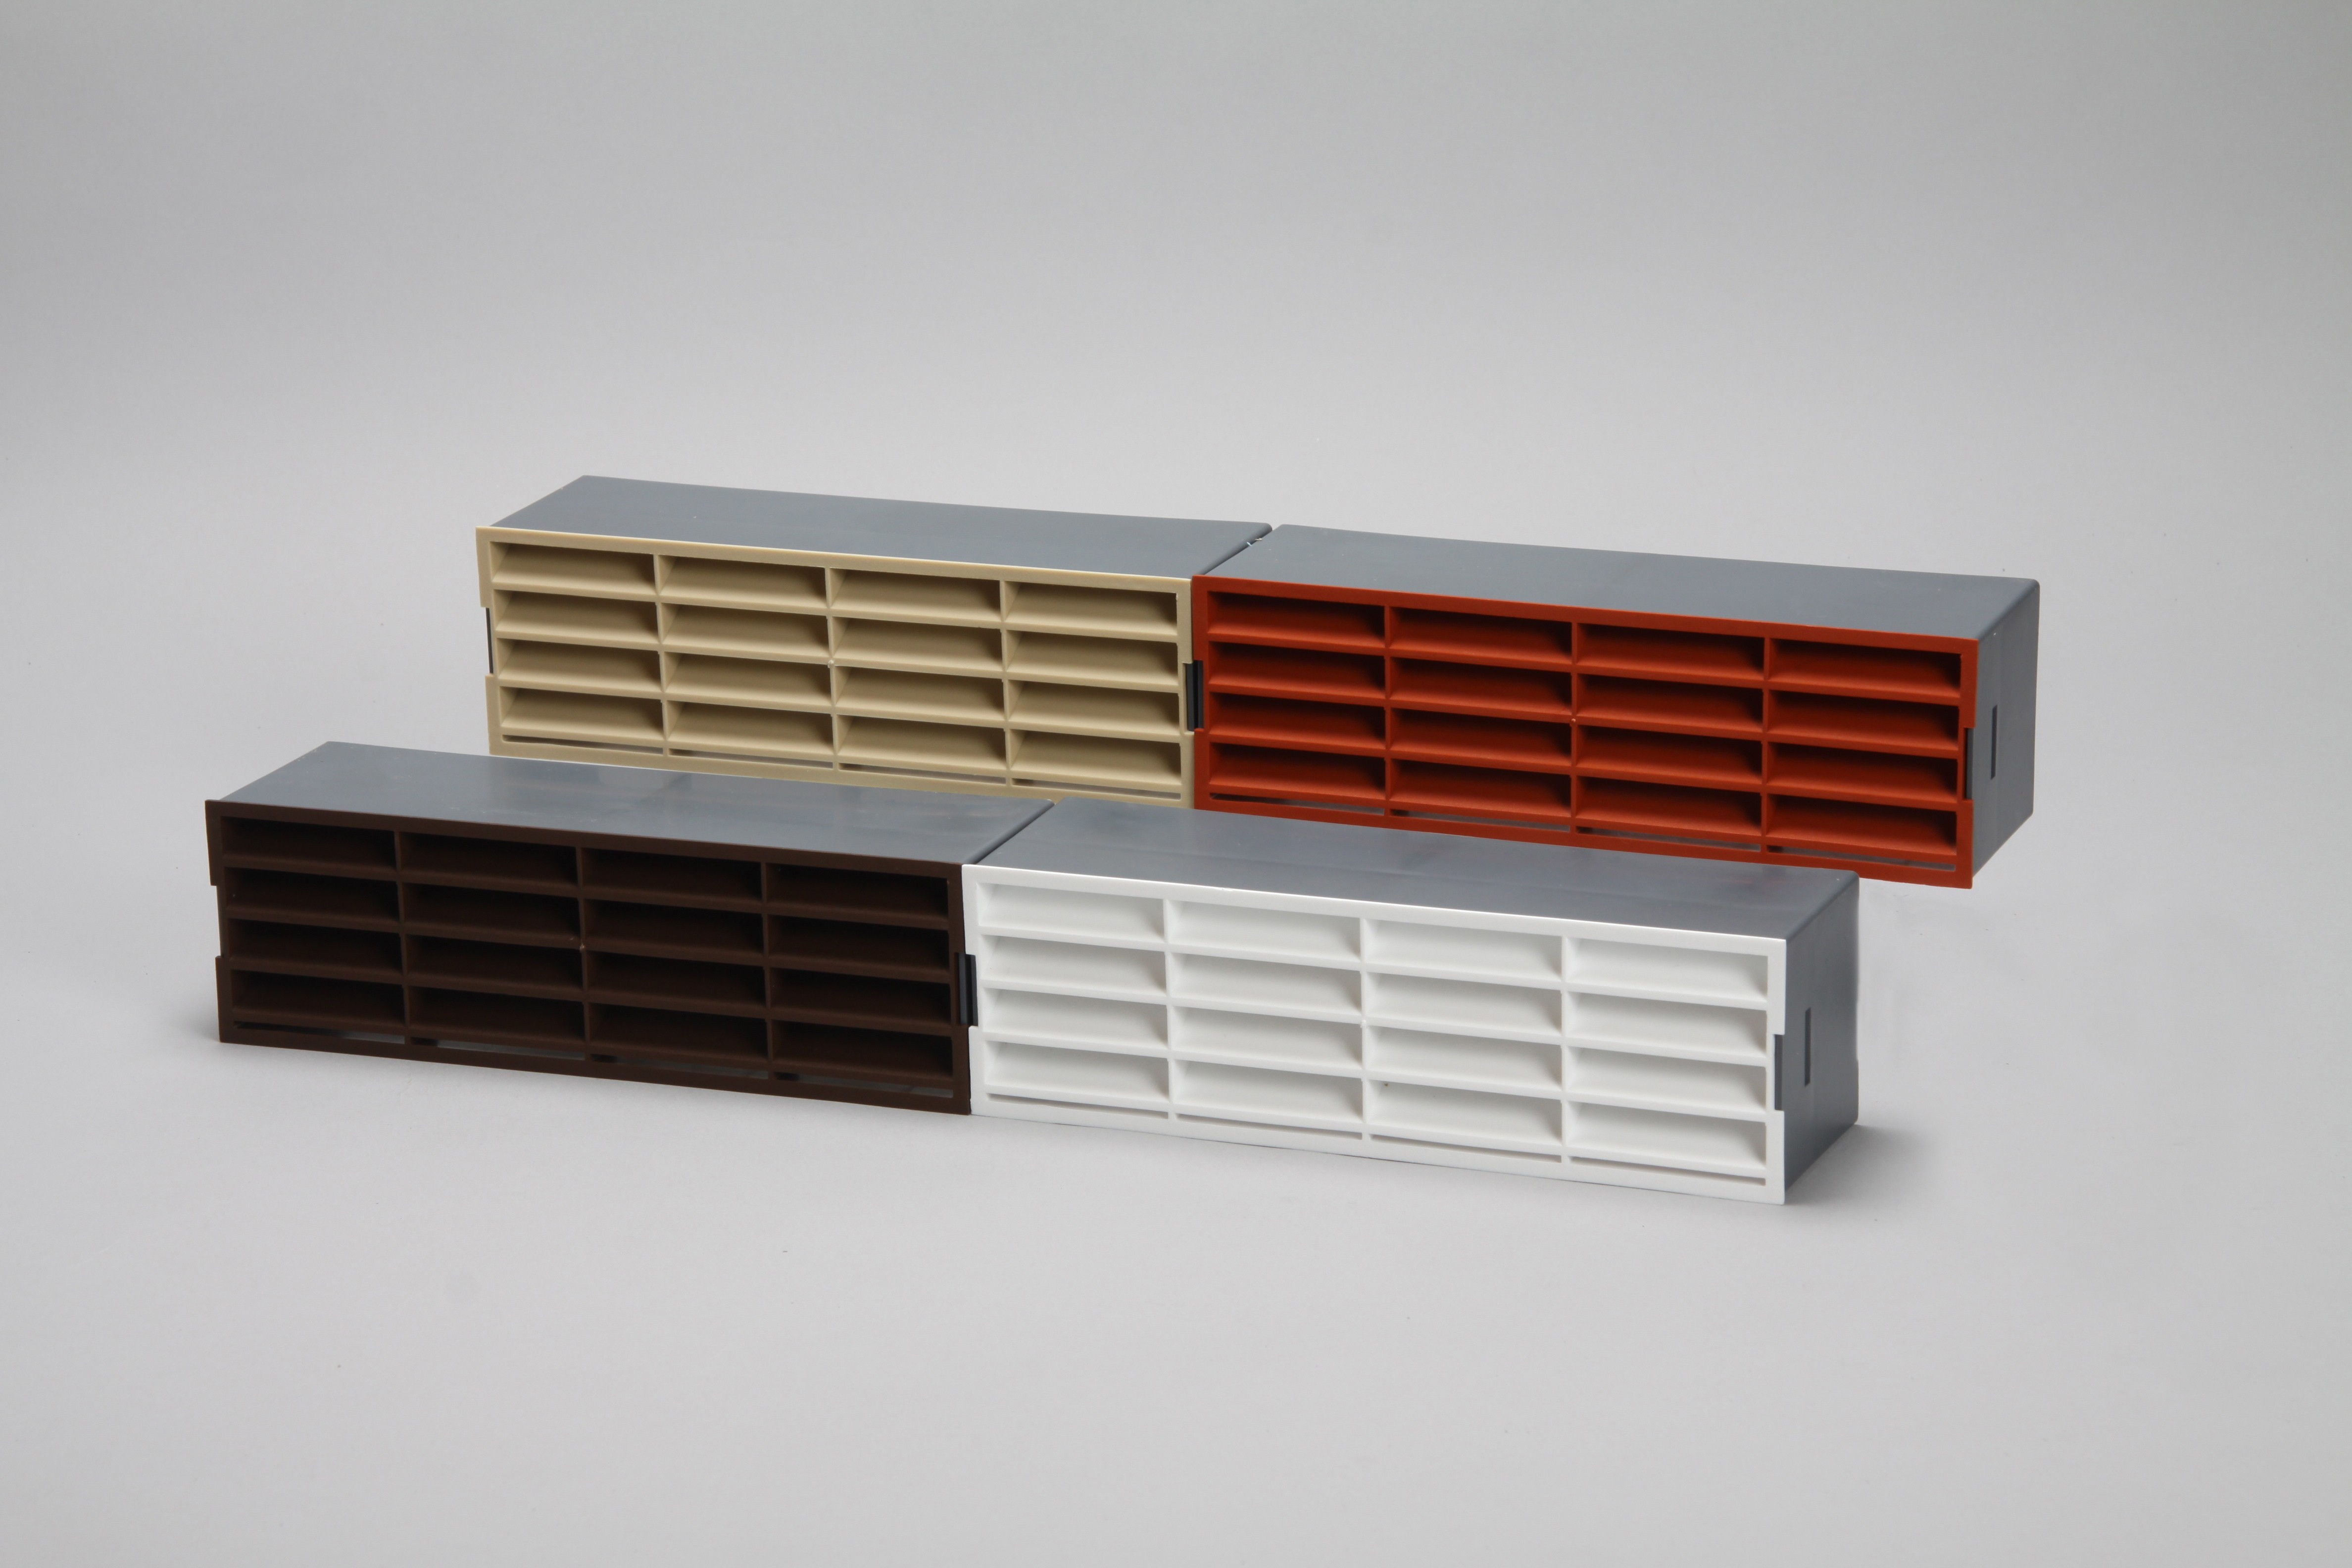 Air brick vent grille inset in holder 204mm x 60mm ducting